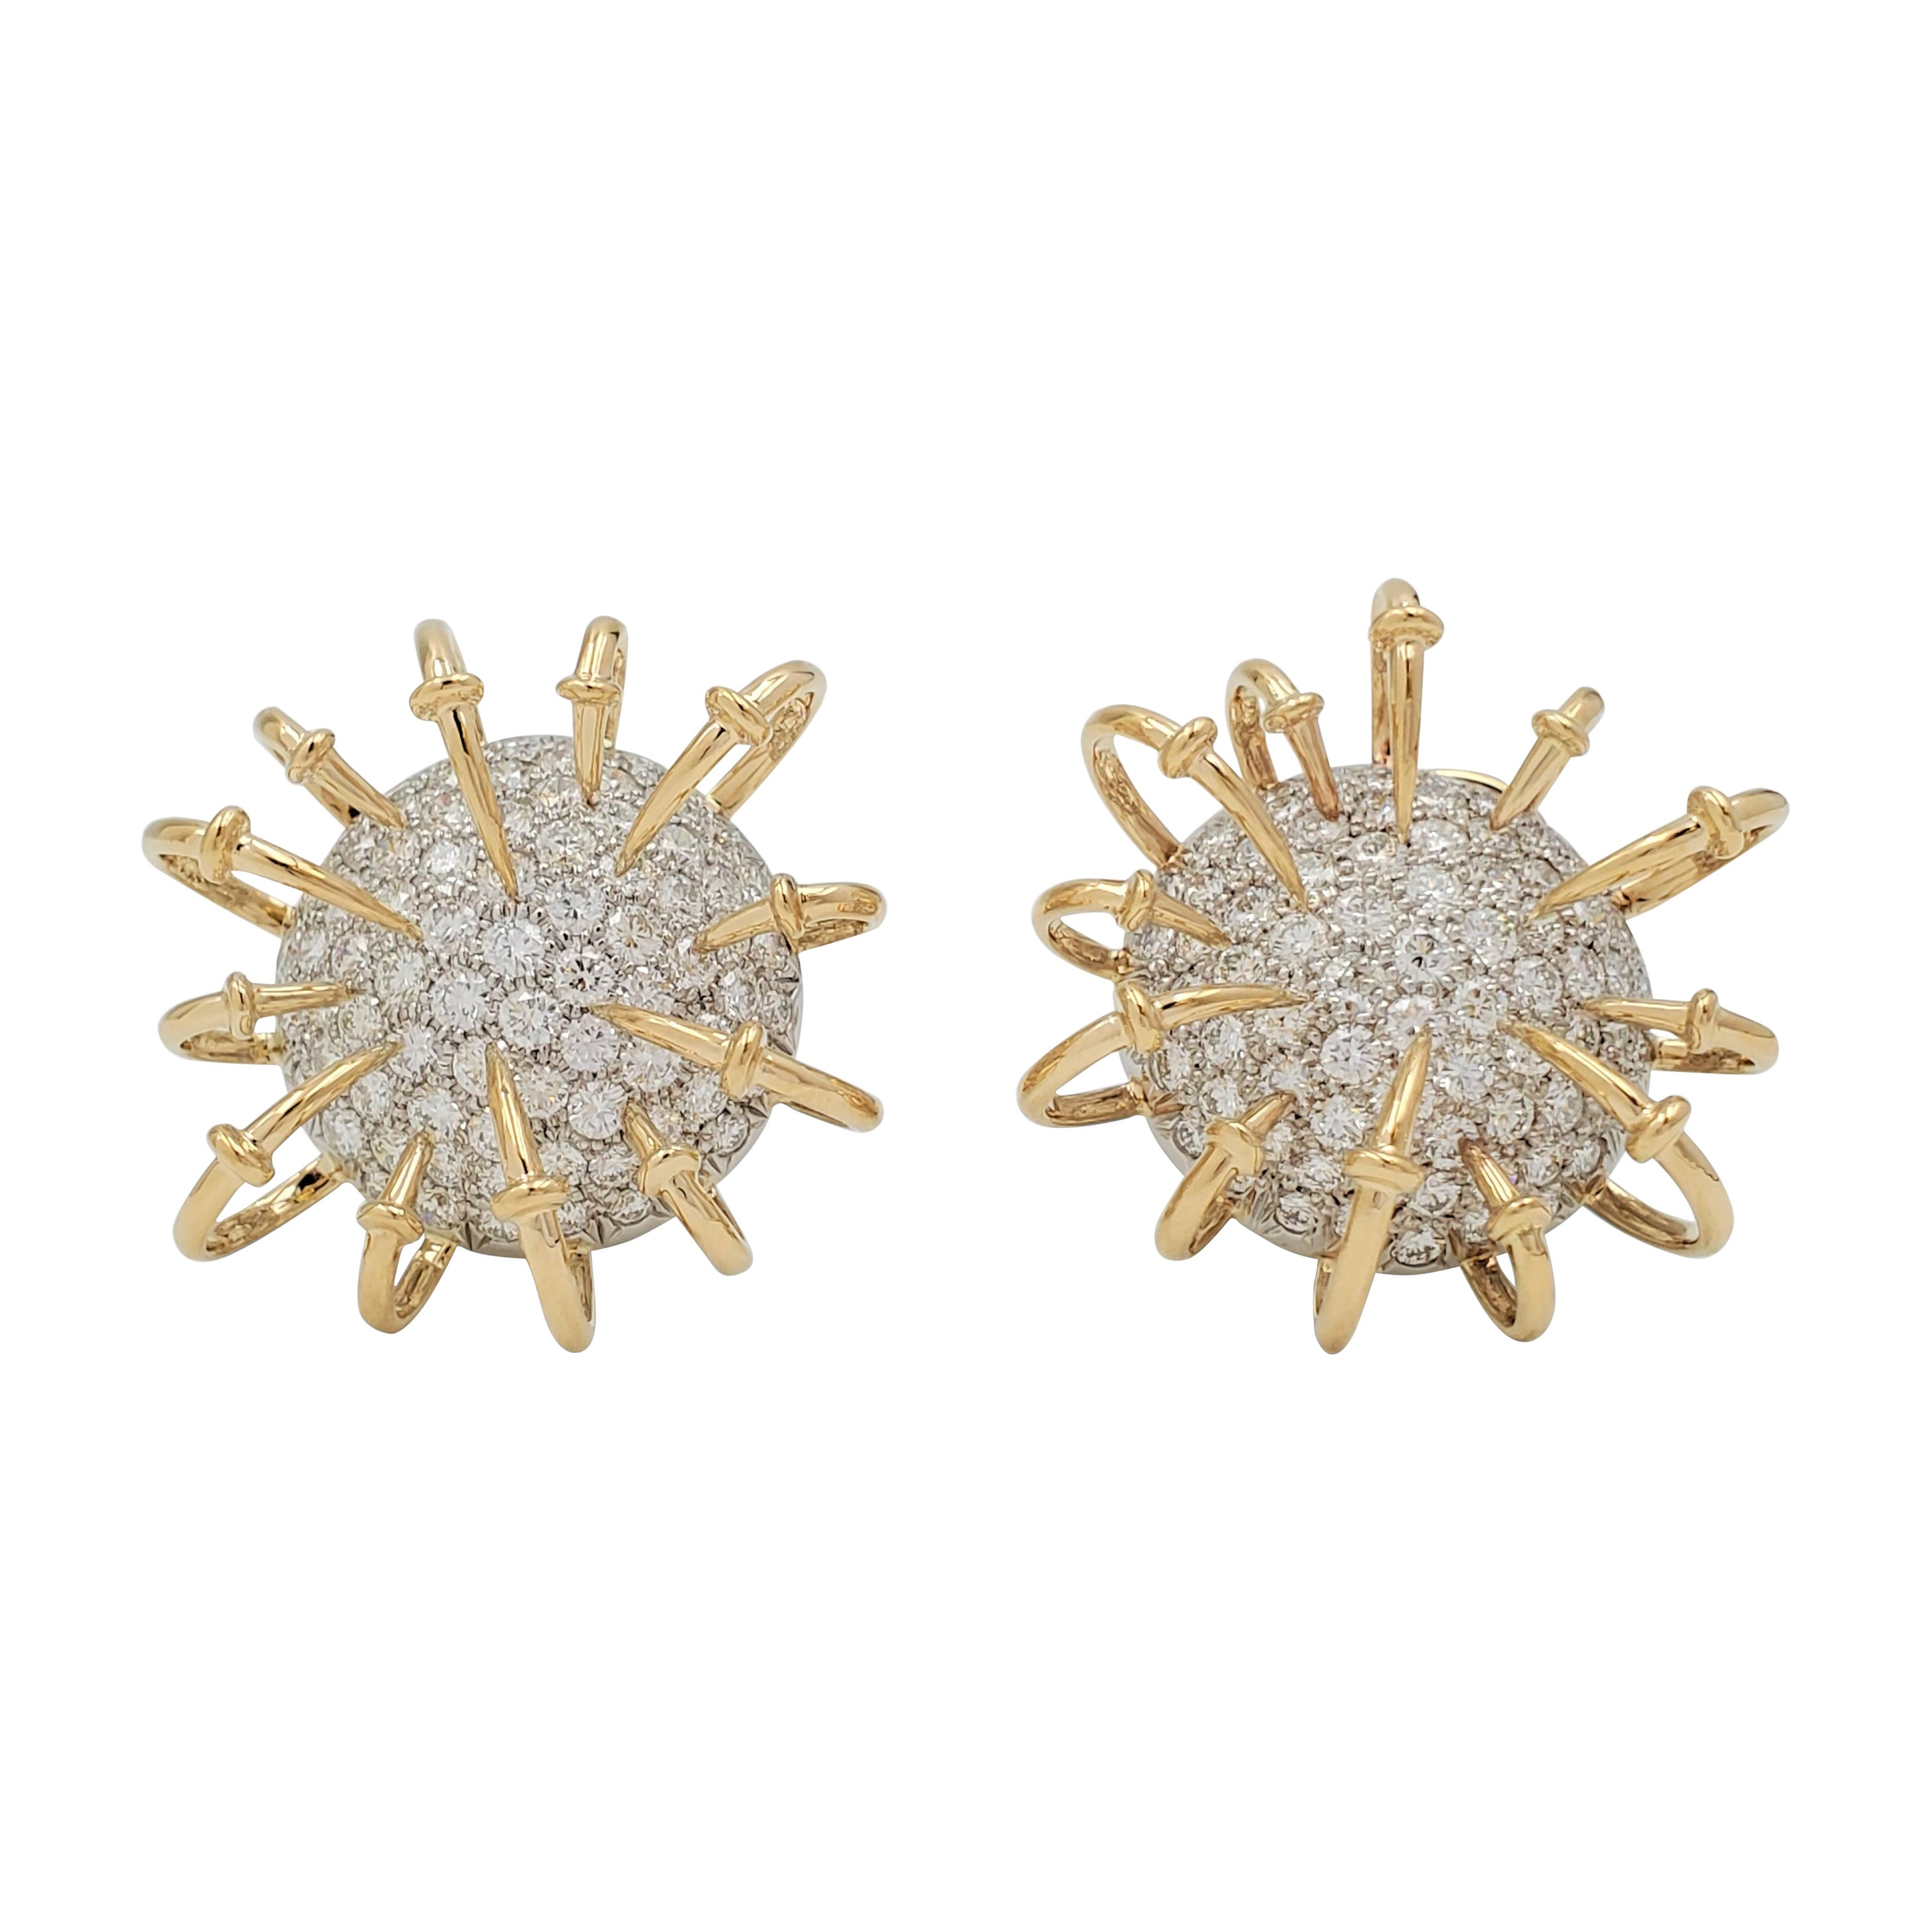 Jean Schlumberger for Tiffany & Co. Platinum Gold and Diamond 'Apollo' Earrings